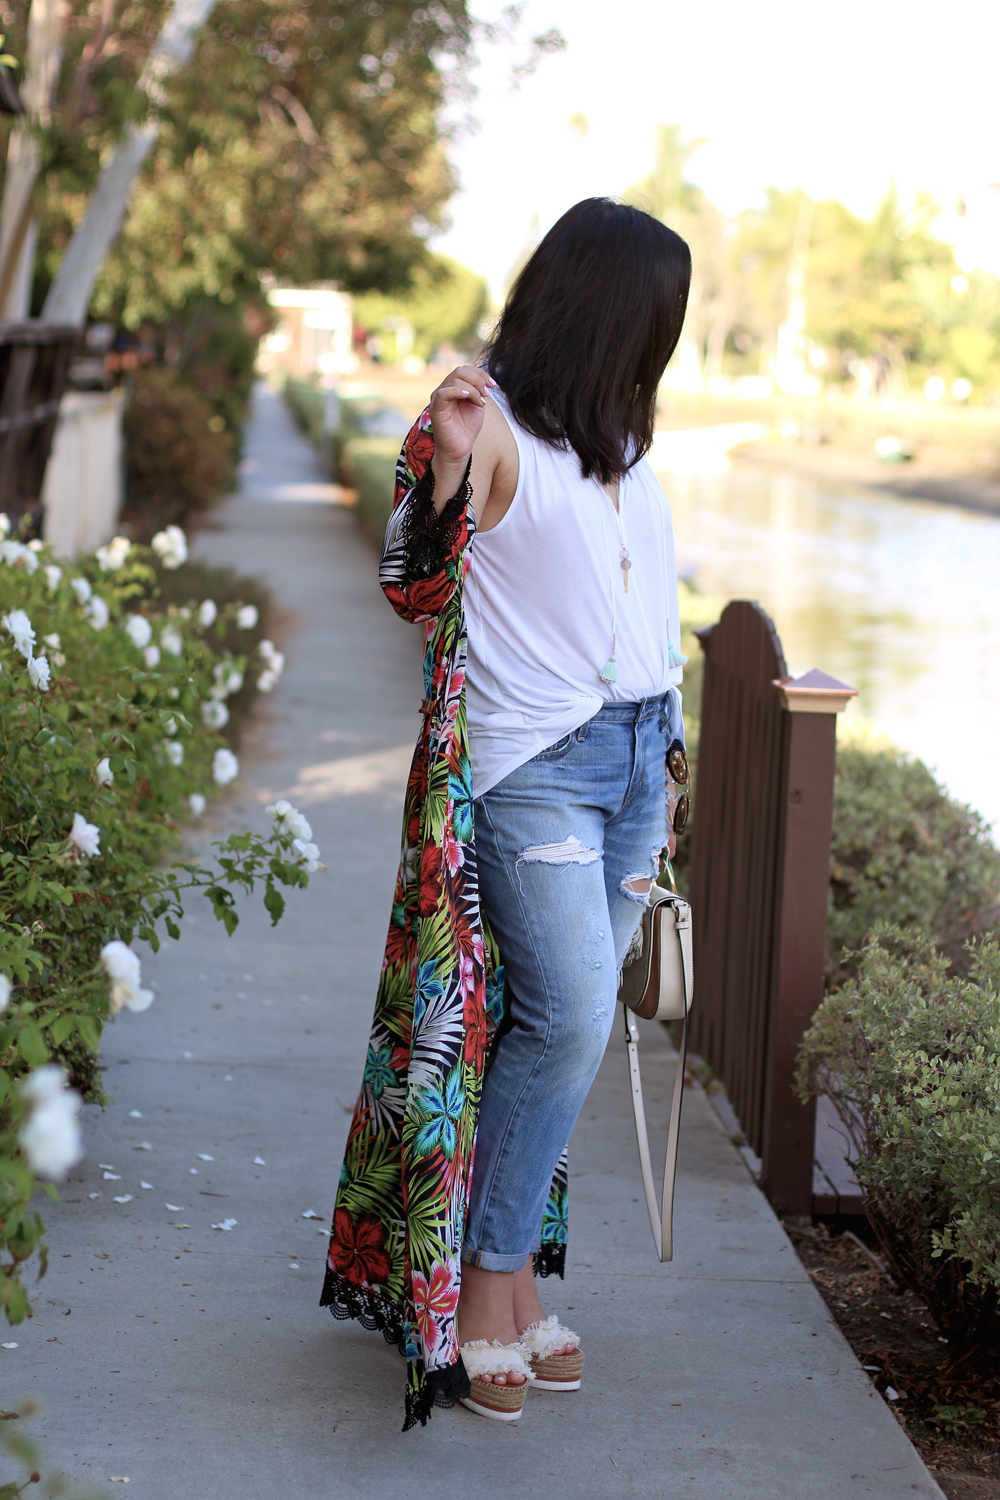 How To Look Instantly Slimmer In A Silk Kimono -